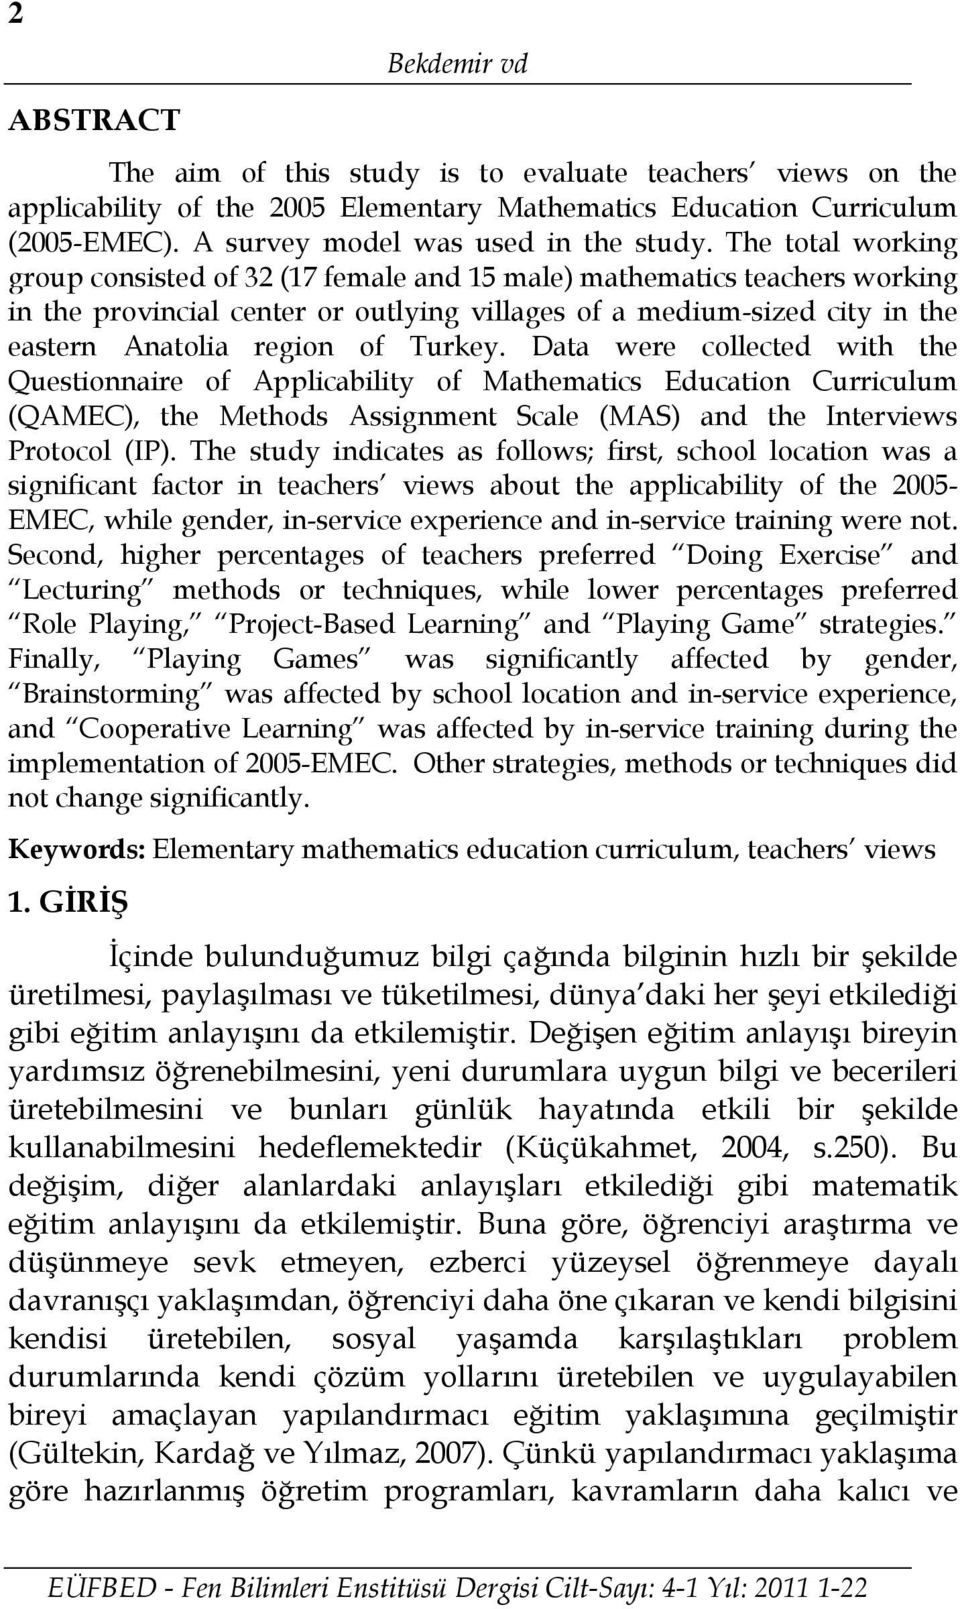 The total working group consisted of 32 (17 female and 15 male) mathematics teachers working in the provincial center or outlying villages of a medium-sized city in the eastern Anatolia region of